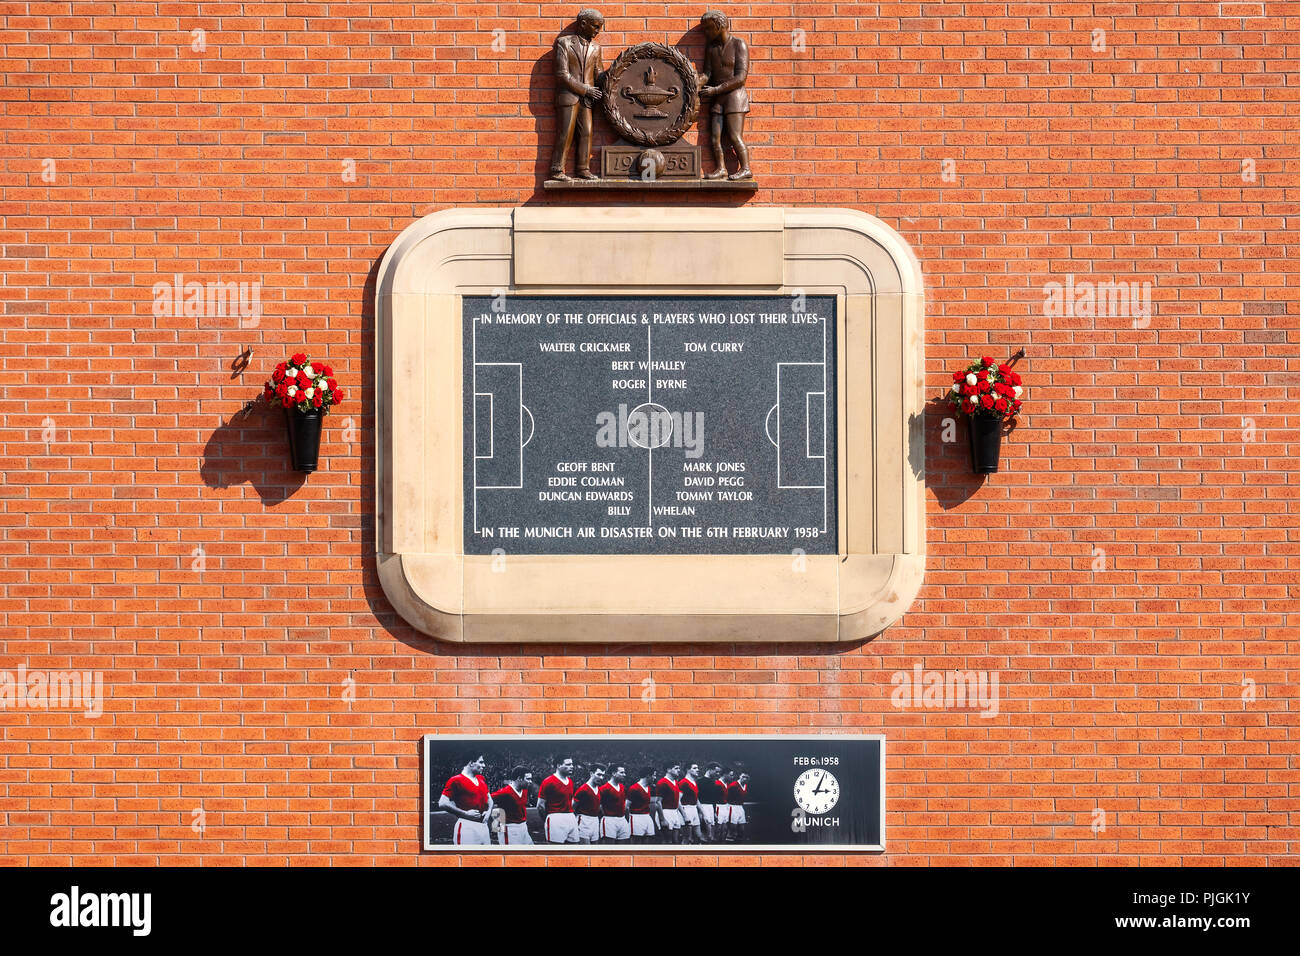 MANCHESTER, UK - MAY 19 2018: A plaque at Old Trafford in memory of the Munich air disaster in 1958 installed on the side og Old Trafforf stadium - Stock Image